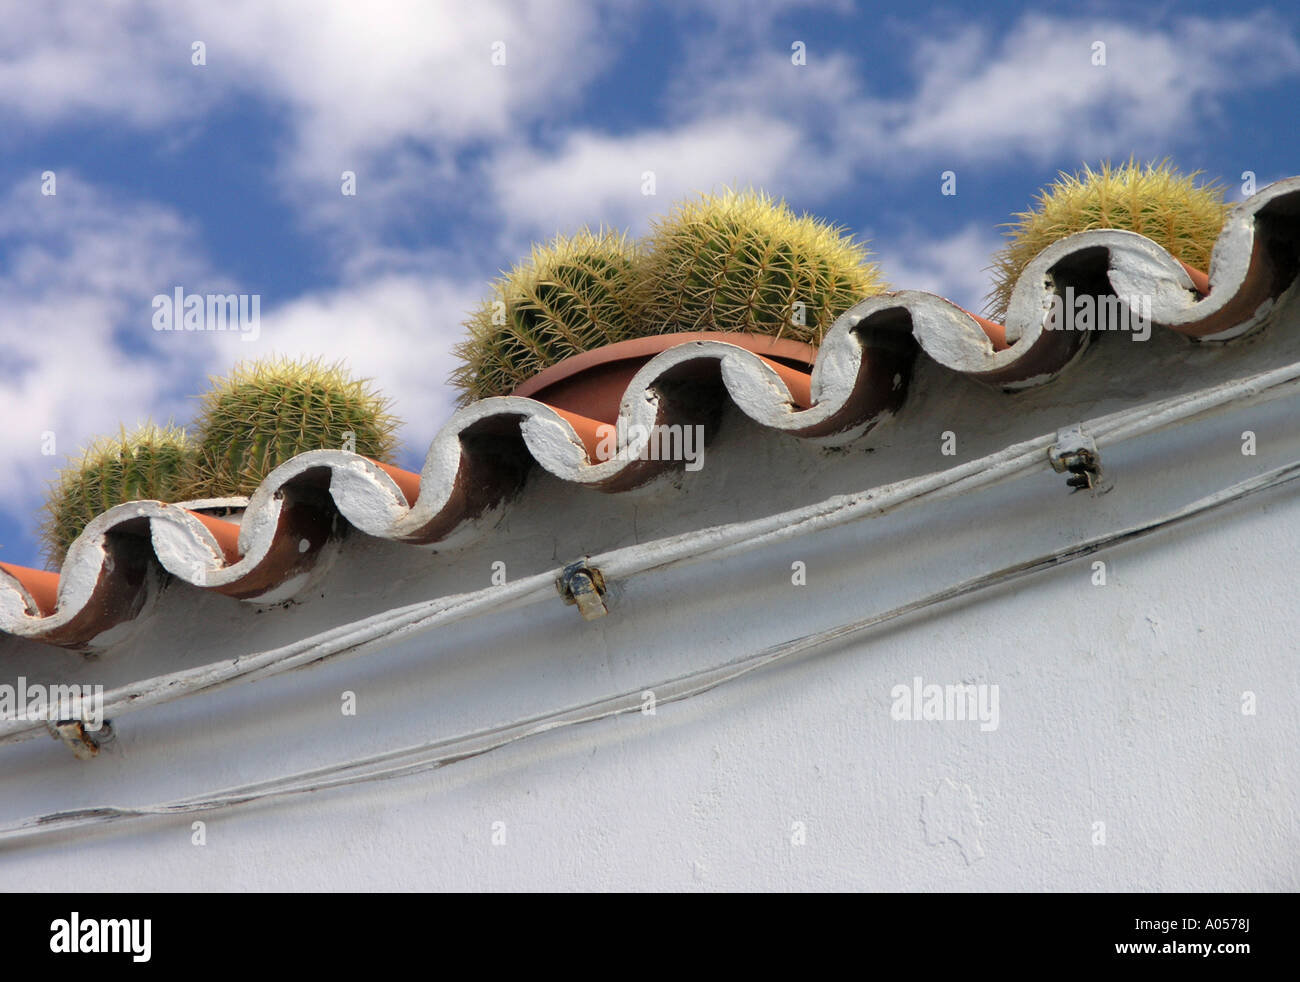 Diagonal terracotta tiled roof with round cacti growing in a row on top - Stock Image